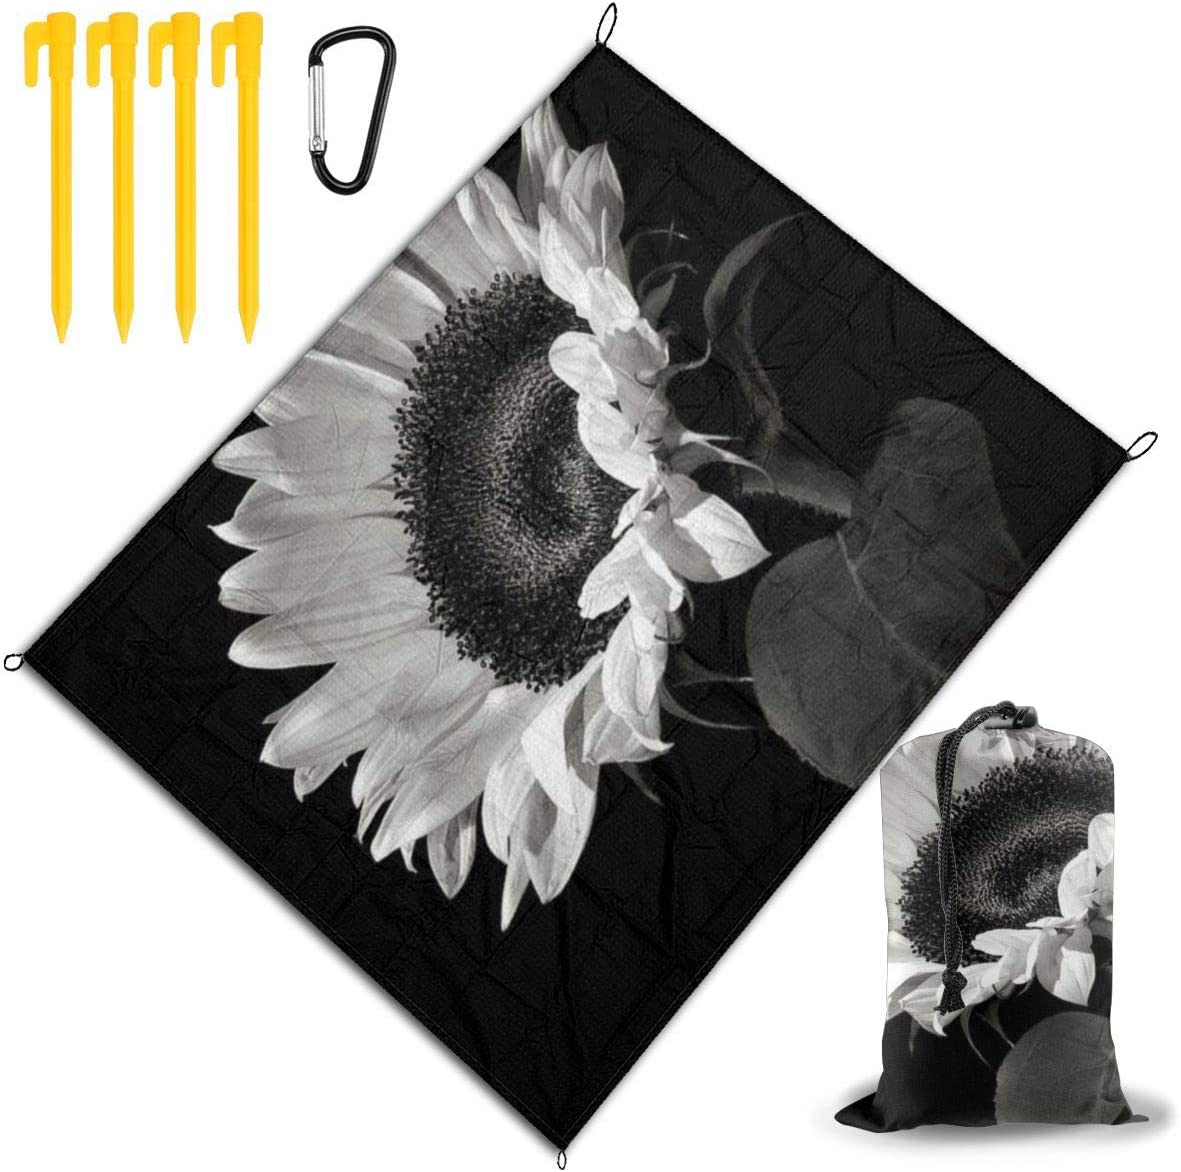 JEKYDOSD Sunflower Black Grey Printed Picnic Mat,Travel Outdoor Beach Blanket Durable Waterproof Sand Beach Mat Blanket for Travel Camping Hiking 67